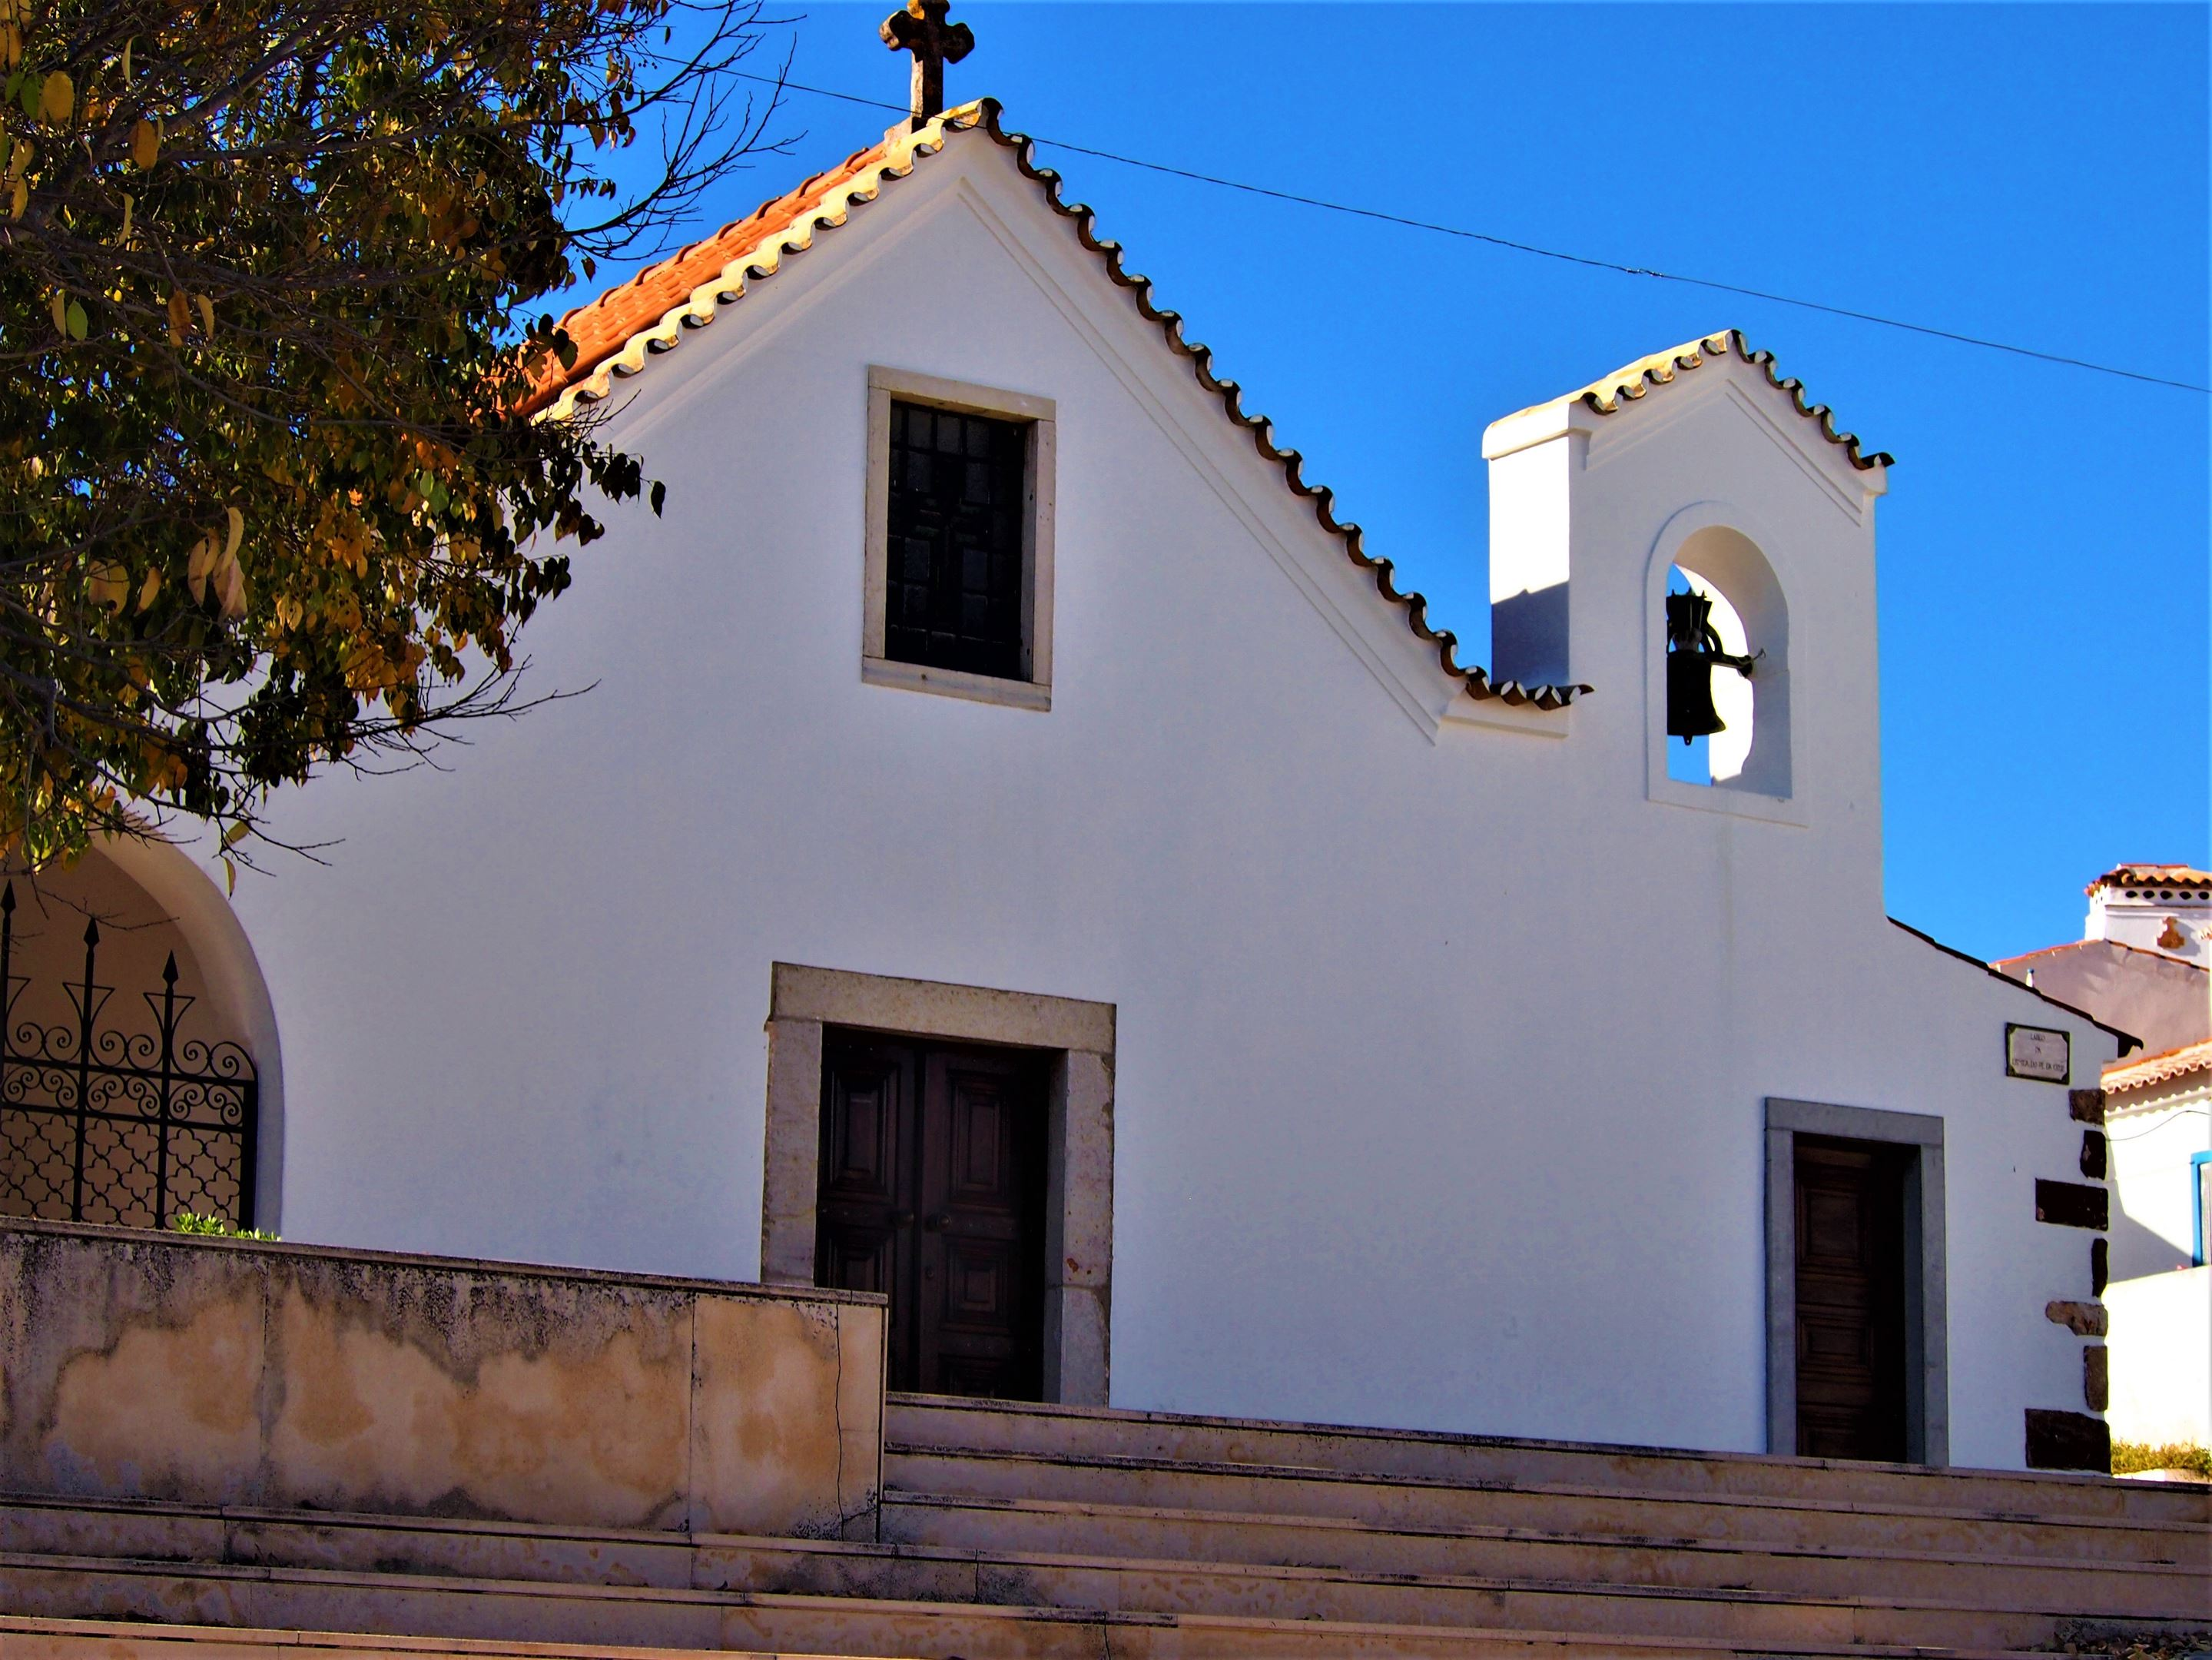 Salir Church, Salir, Algarve